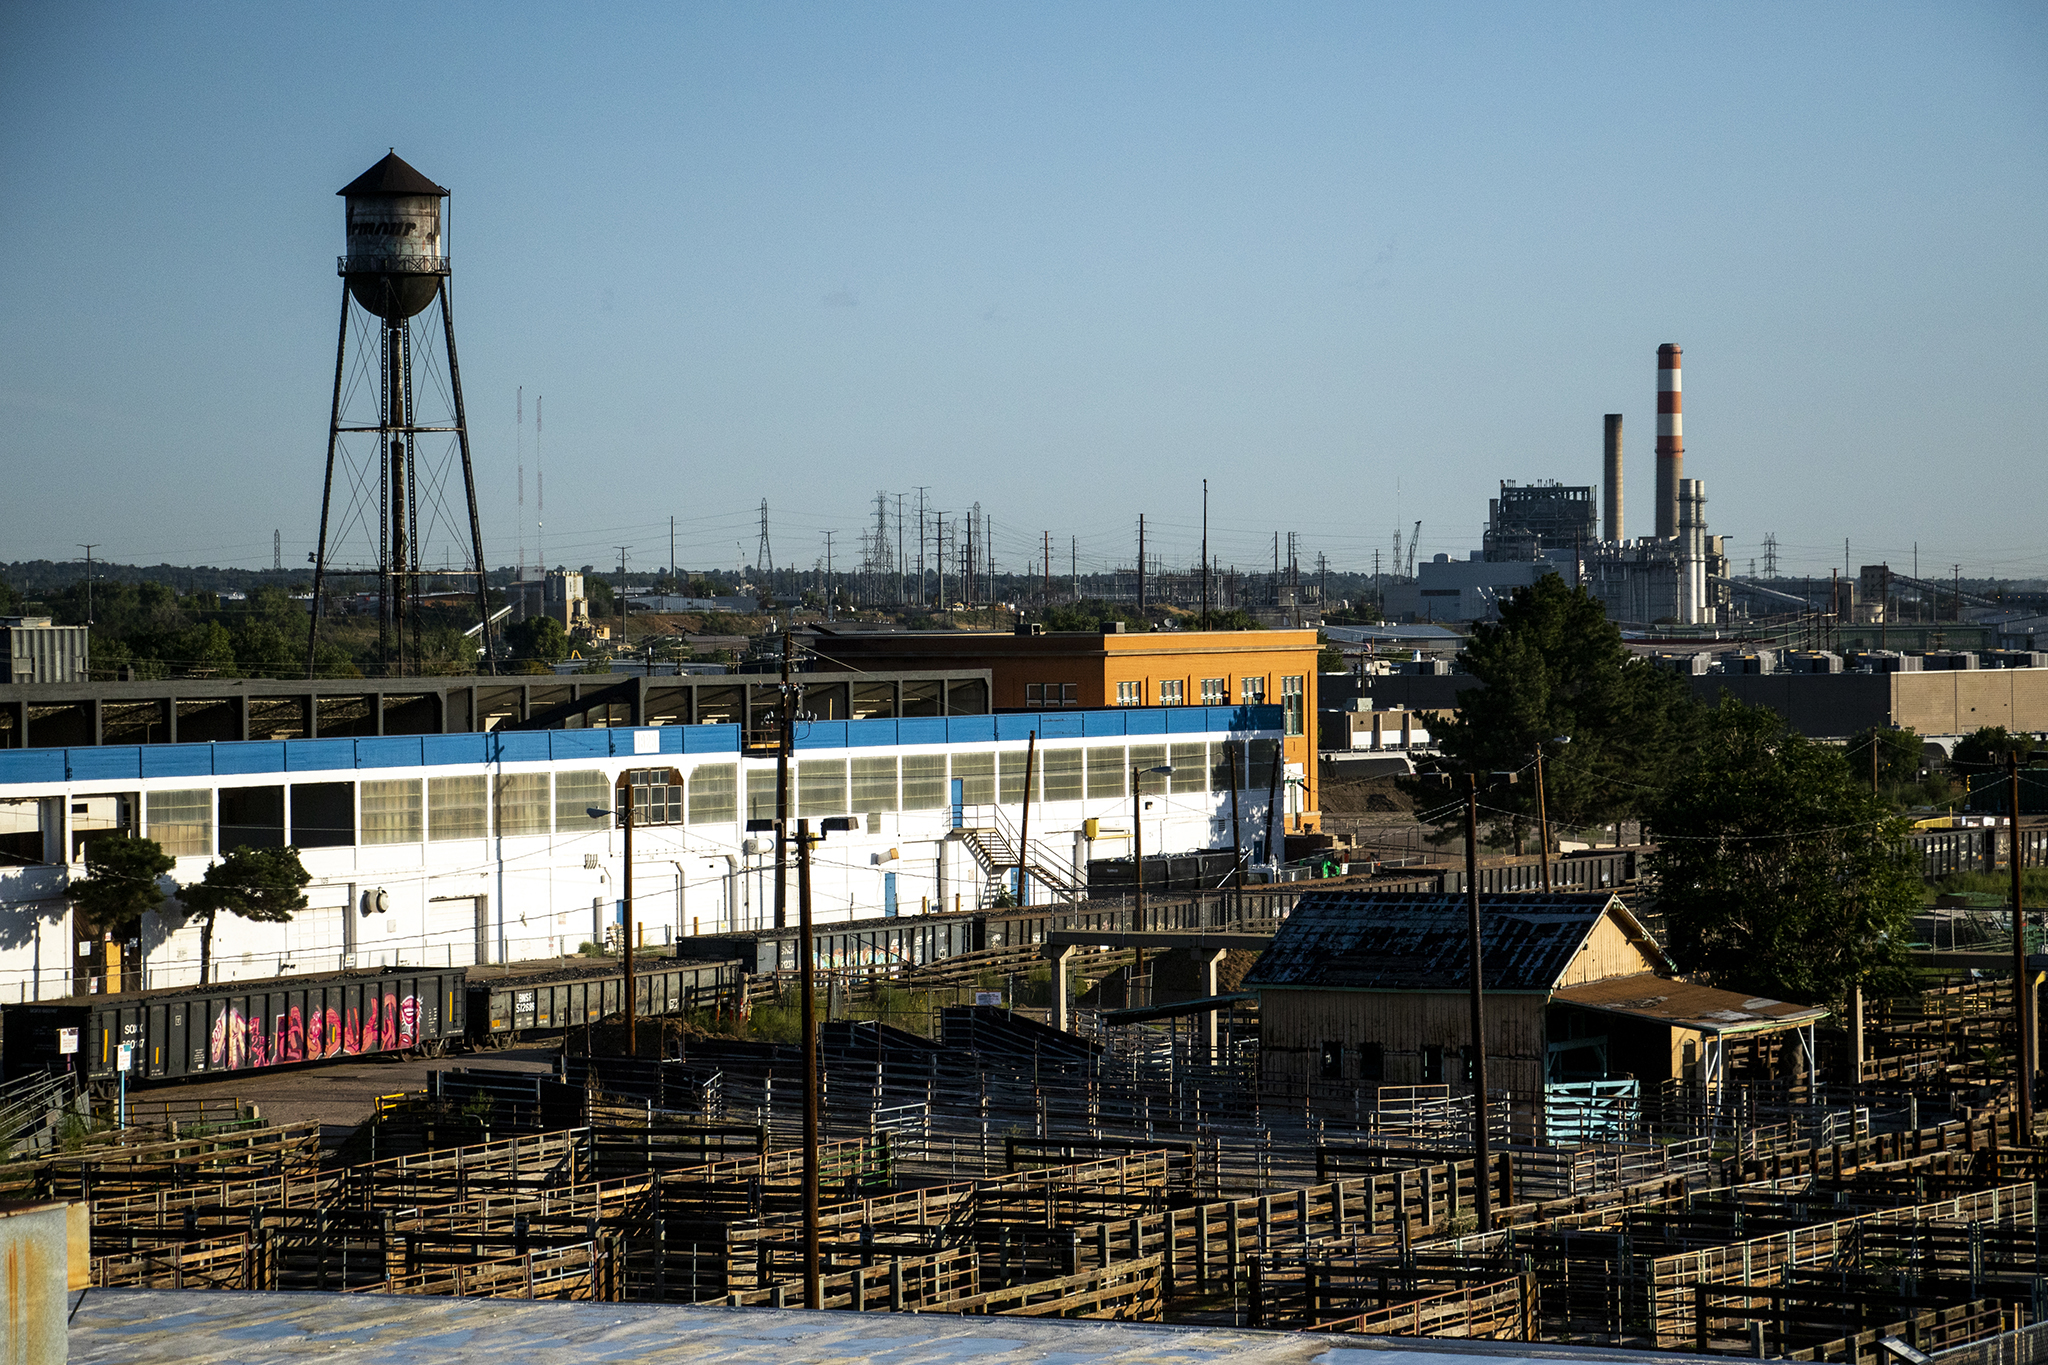 The National Western complex and Xcel Energy's Cherokee Generating Station seen from the historic Denver Union Stock Yard Exchange Building, Sept. 12, 2019.